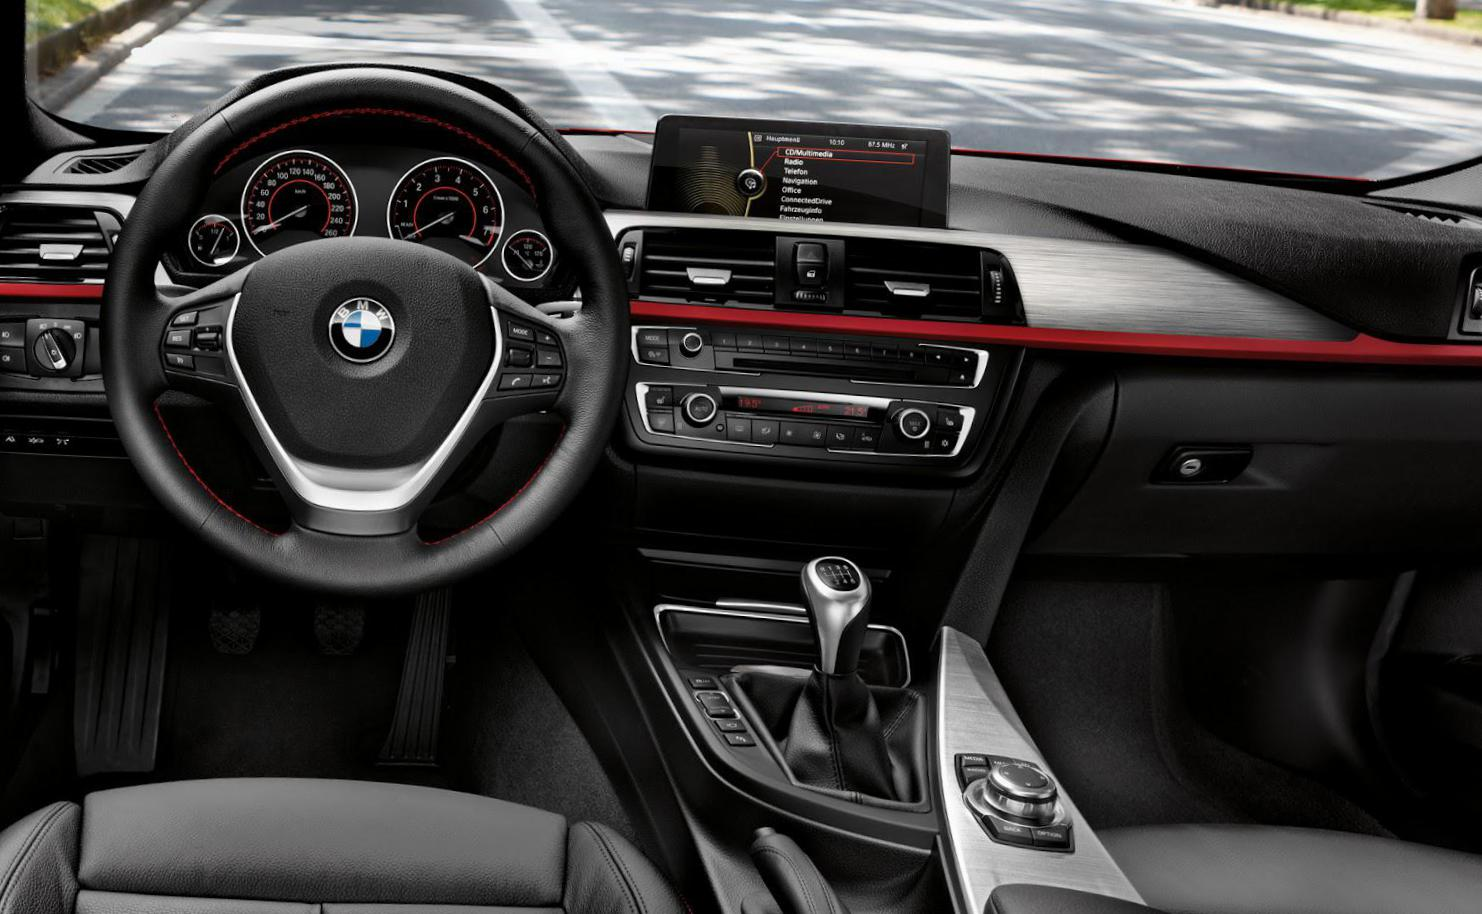 BMW M3 Sedan (F80) price hatchback